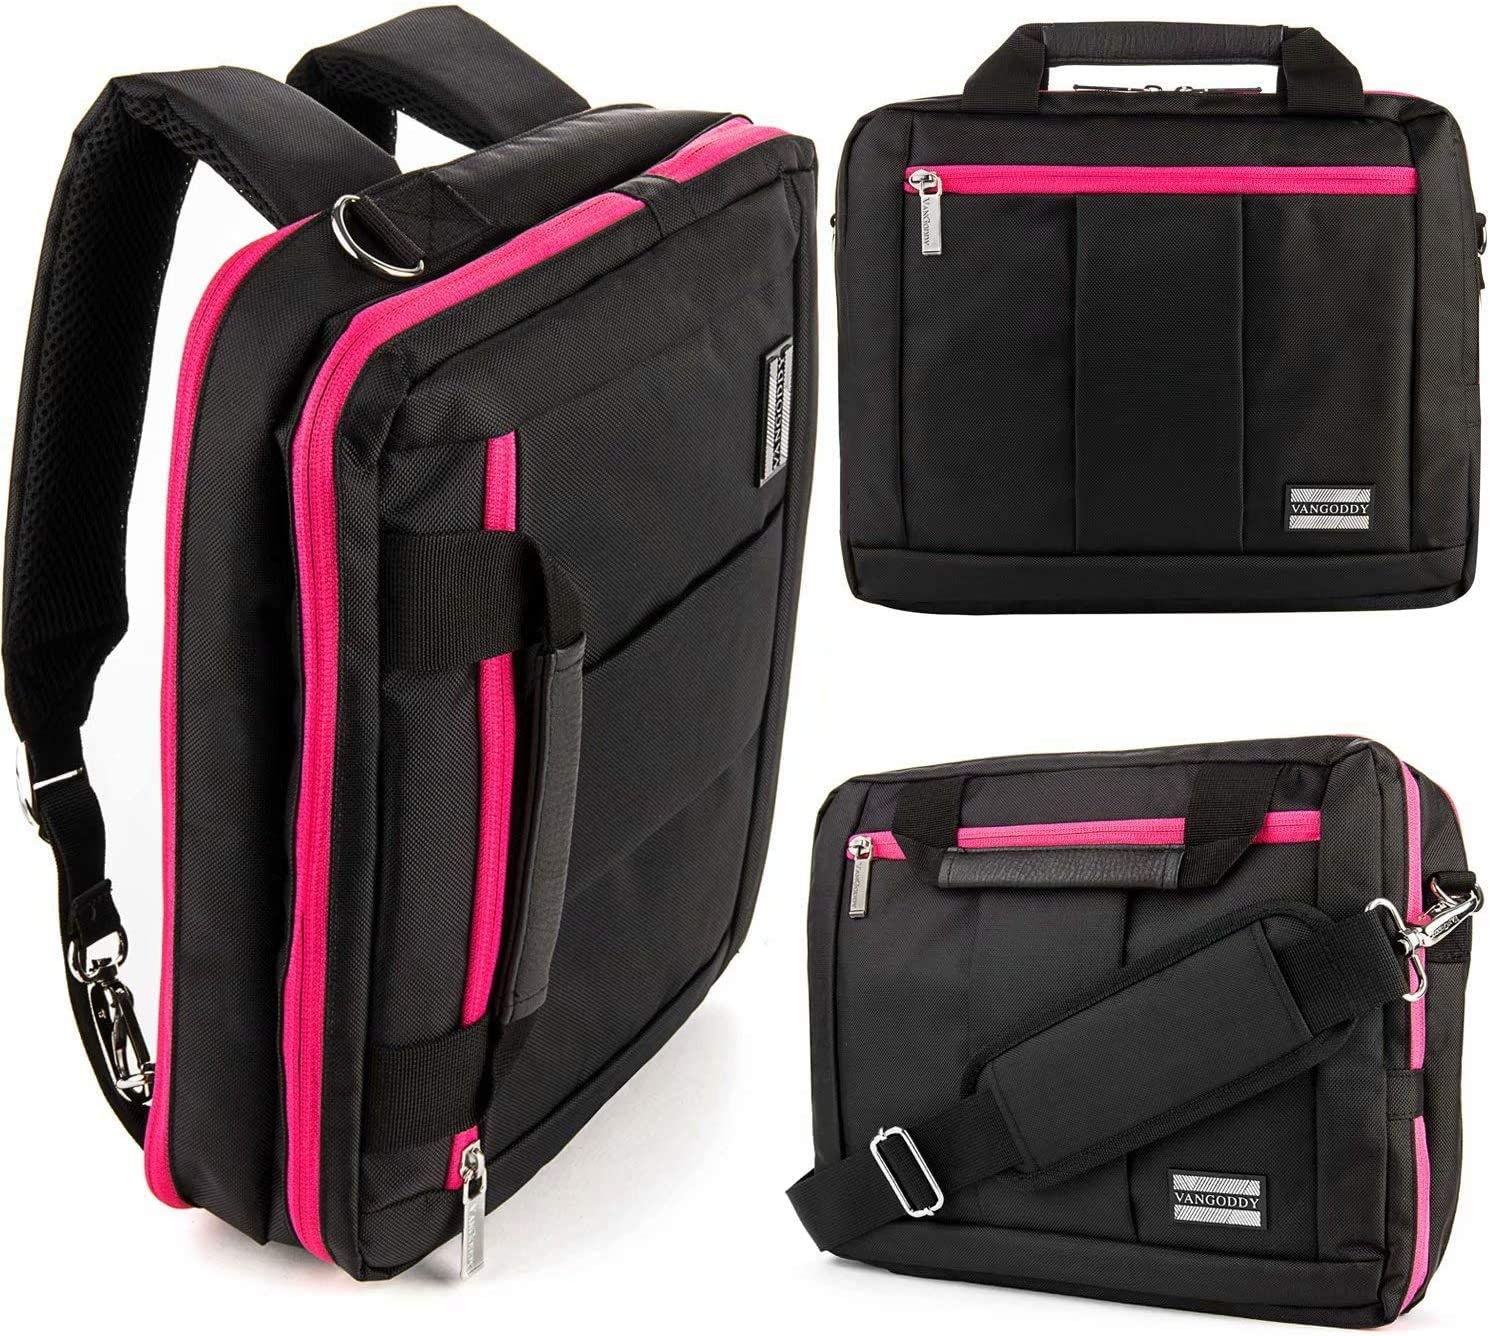 11 12 inch Laptop Case Bag for Surface Pro X 7 2019 MacBook A1534 A1465 A1370